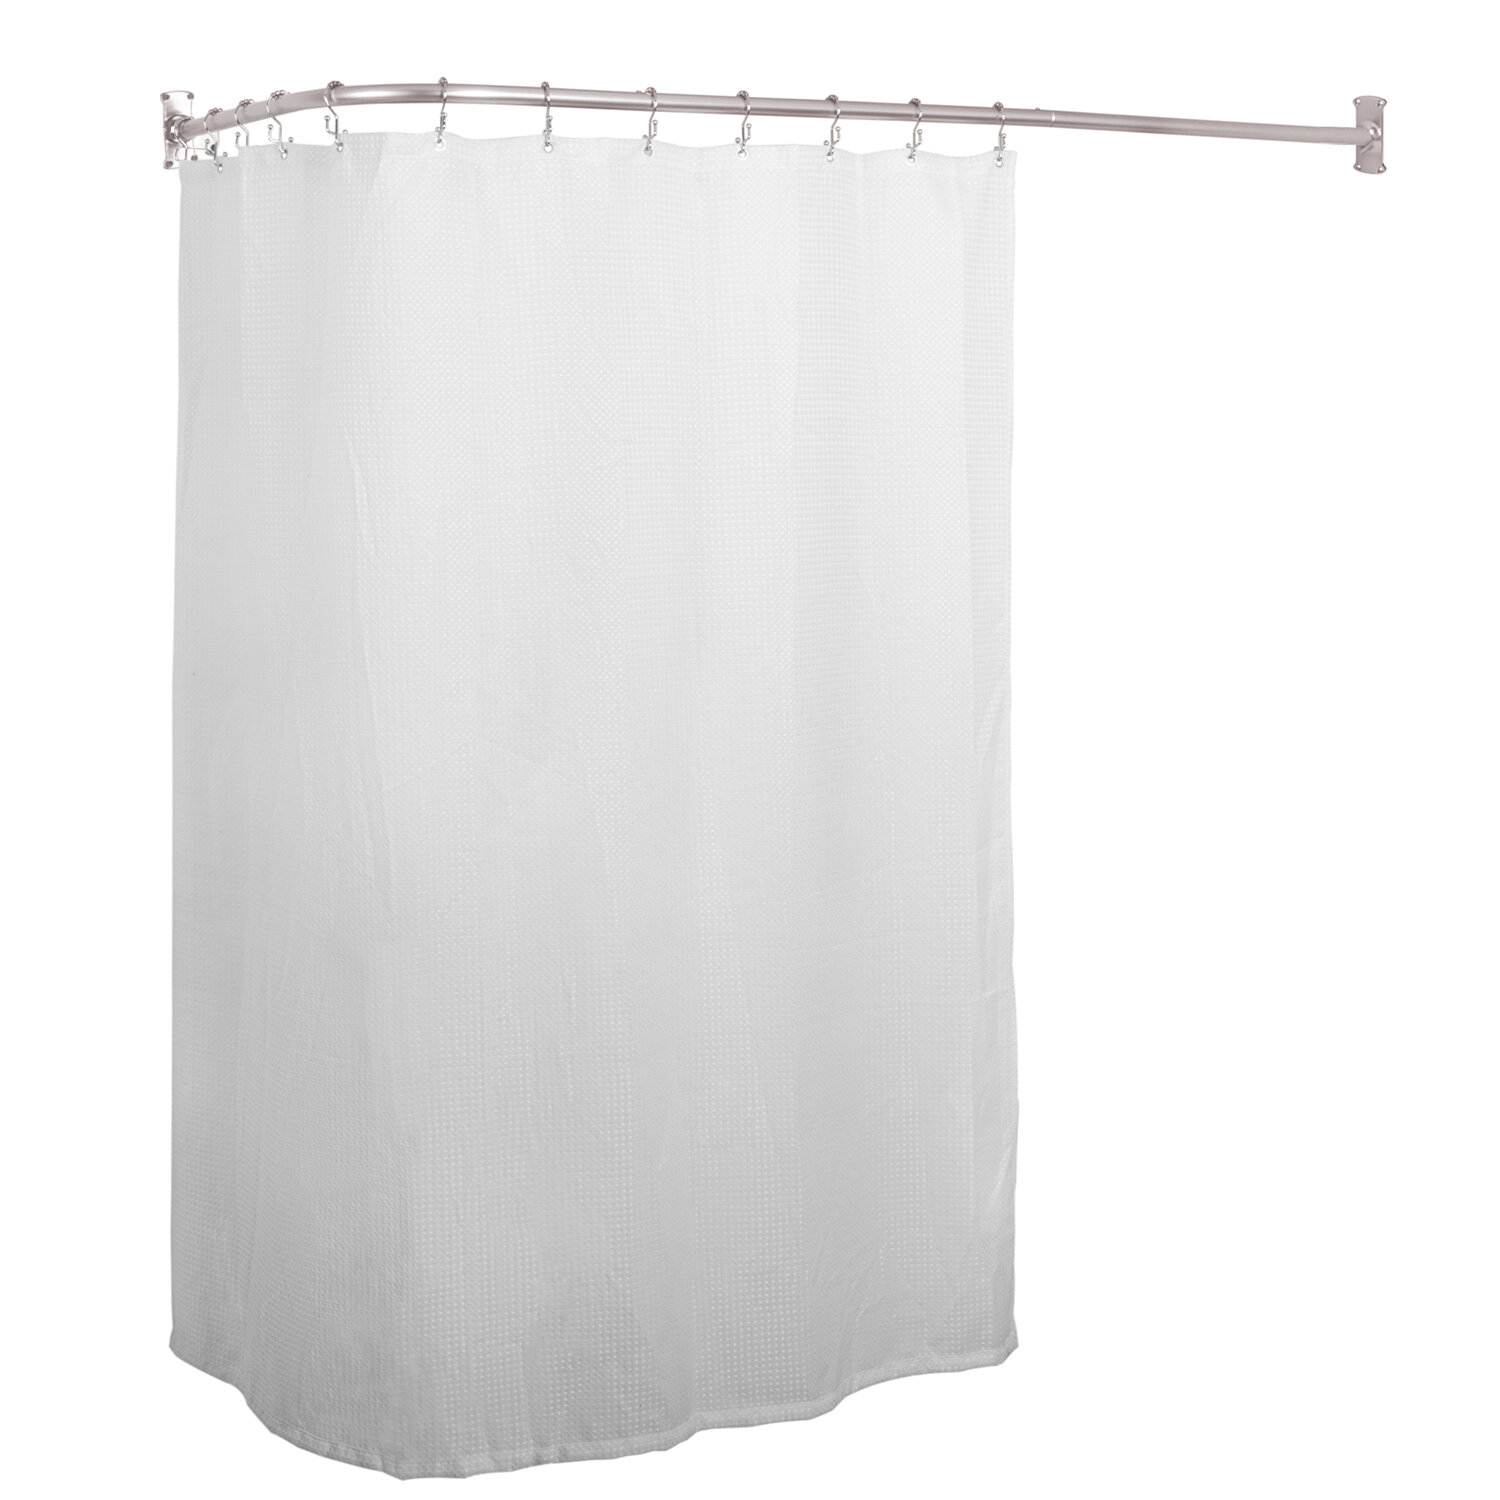 L Shaped Fixed Shower Curtain